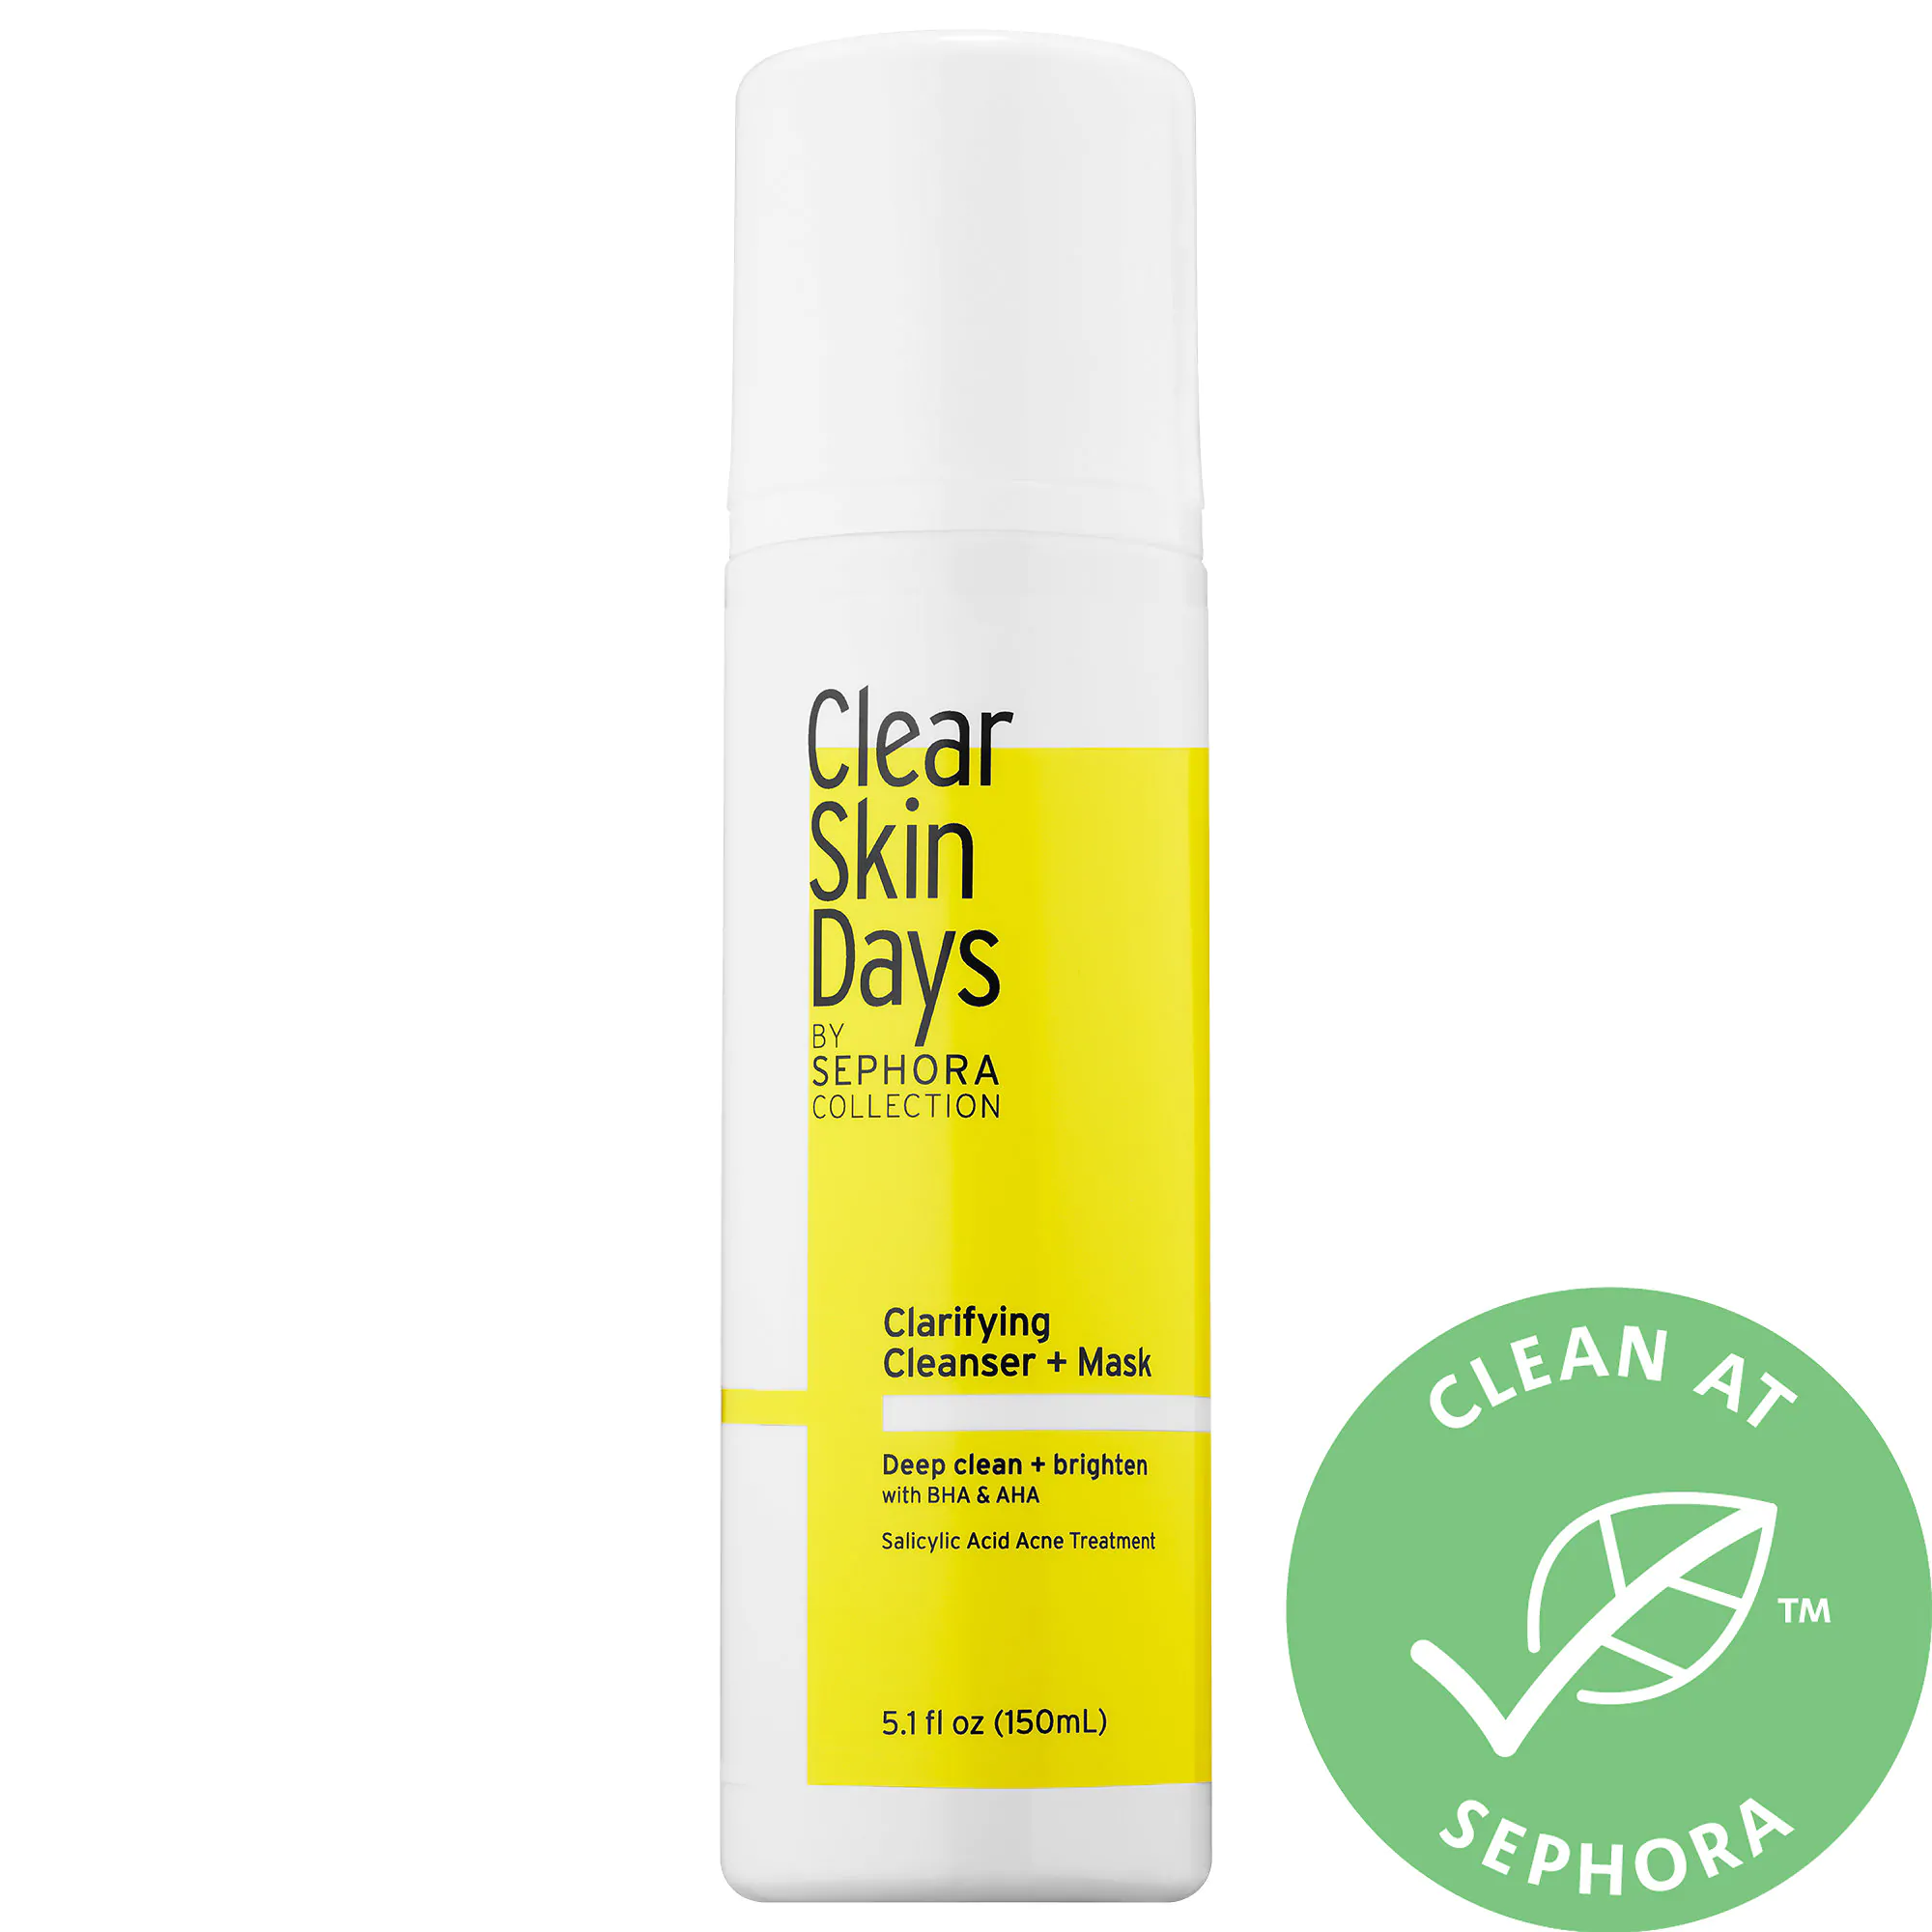 SEPHORA COLLECTION-Clear Skin Days by Sephora Collection Clarifying Cleanser + Mask